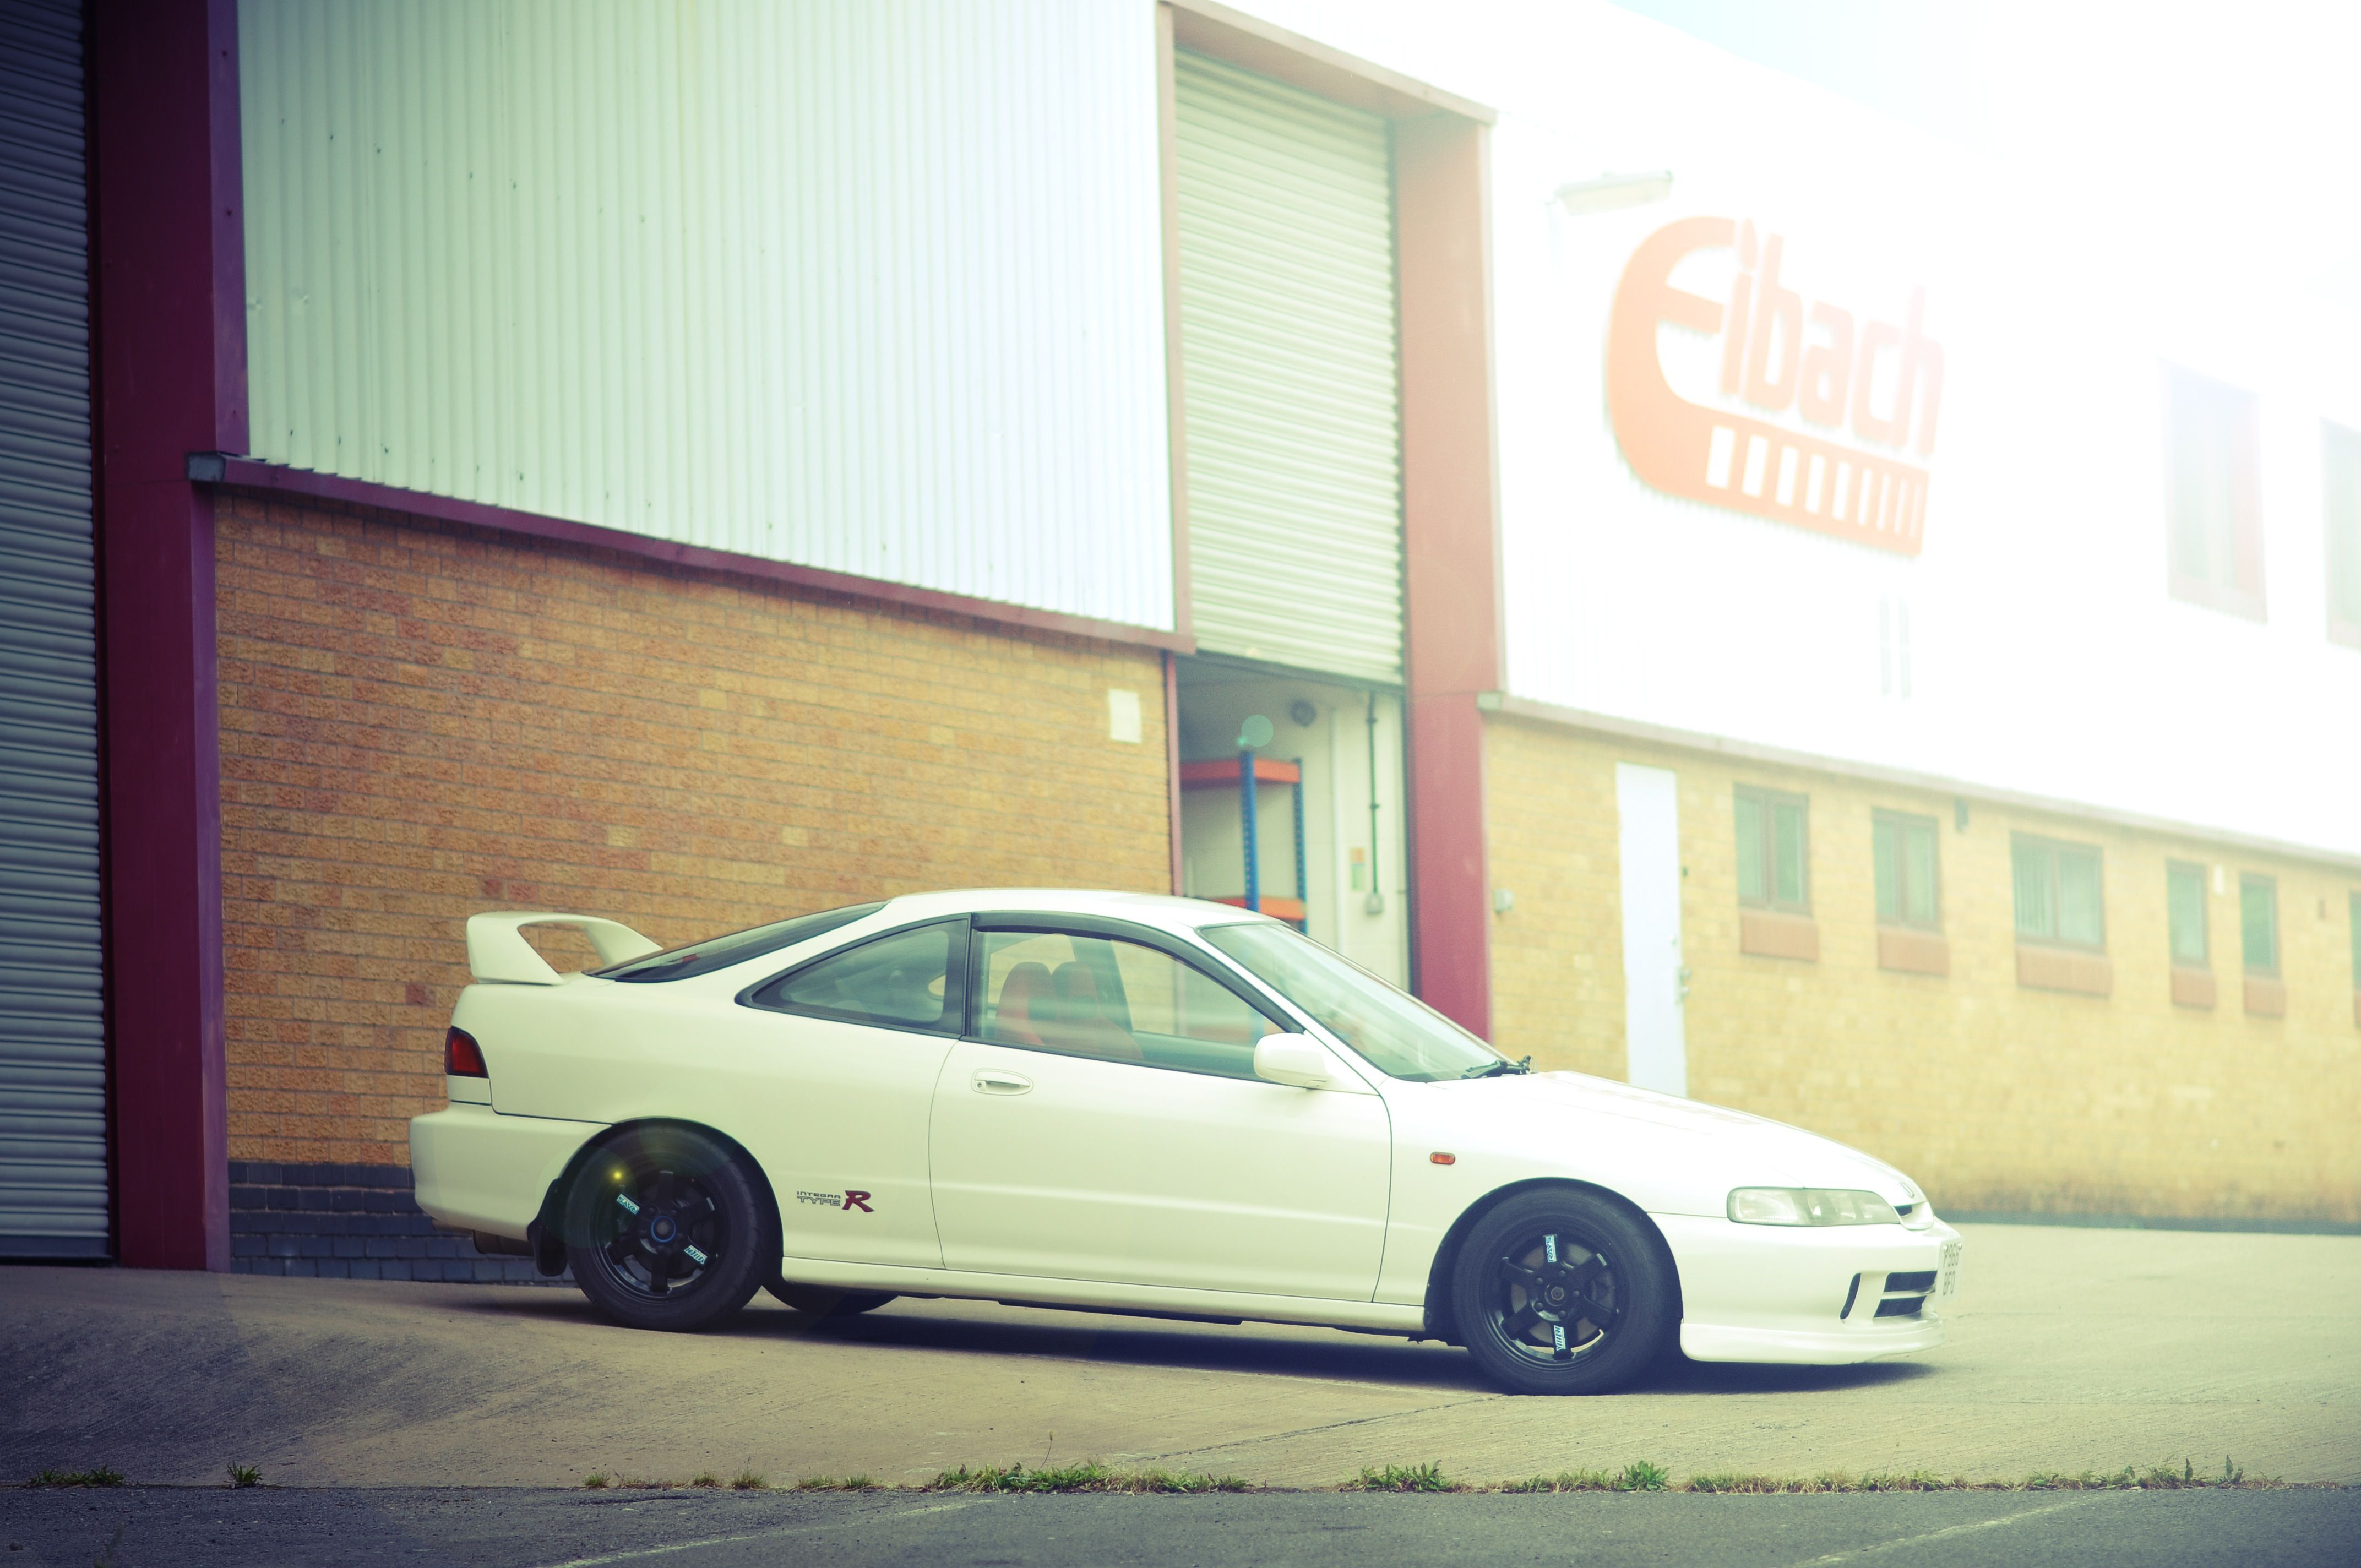 K Swapped Jdm Honda Integra Dc2 Type R On Volk Racing Te37 Wheels Captured At Eibach Uk Japan Cars Jdm Jdm Honda